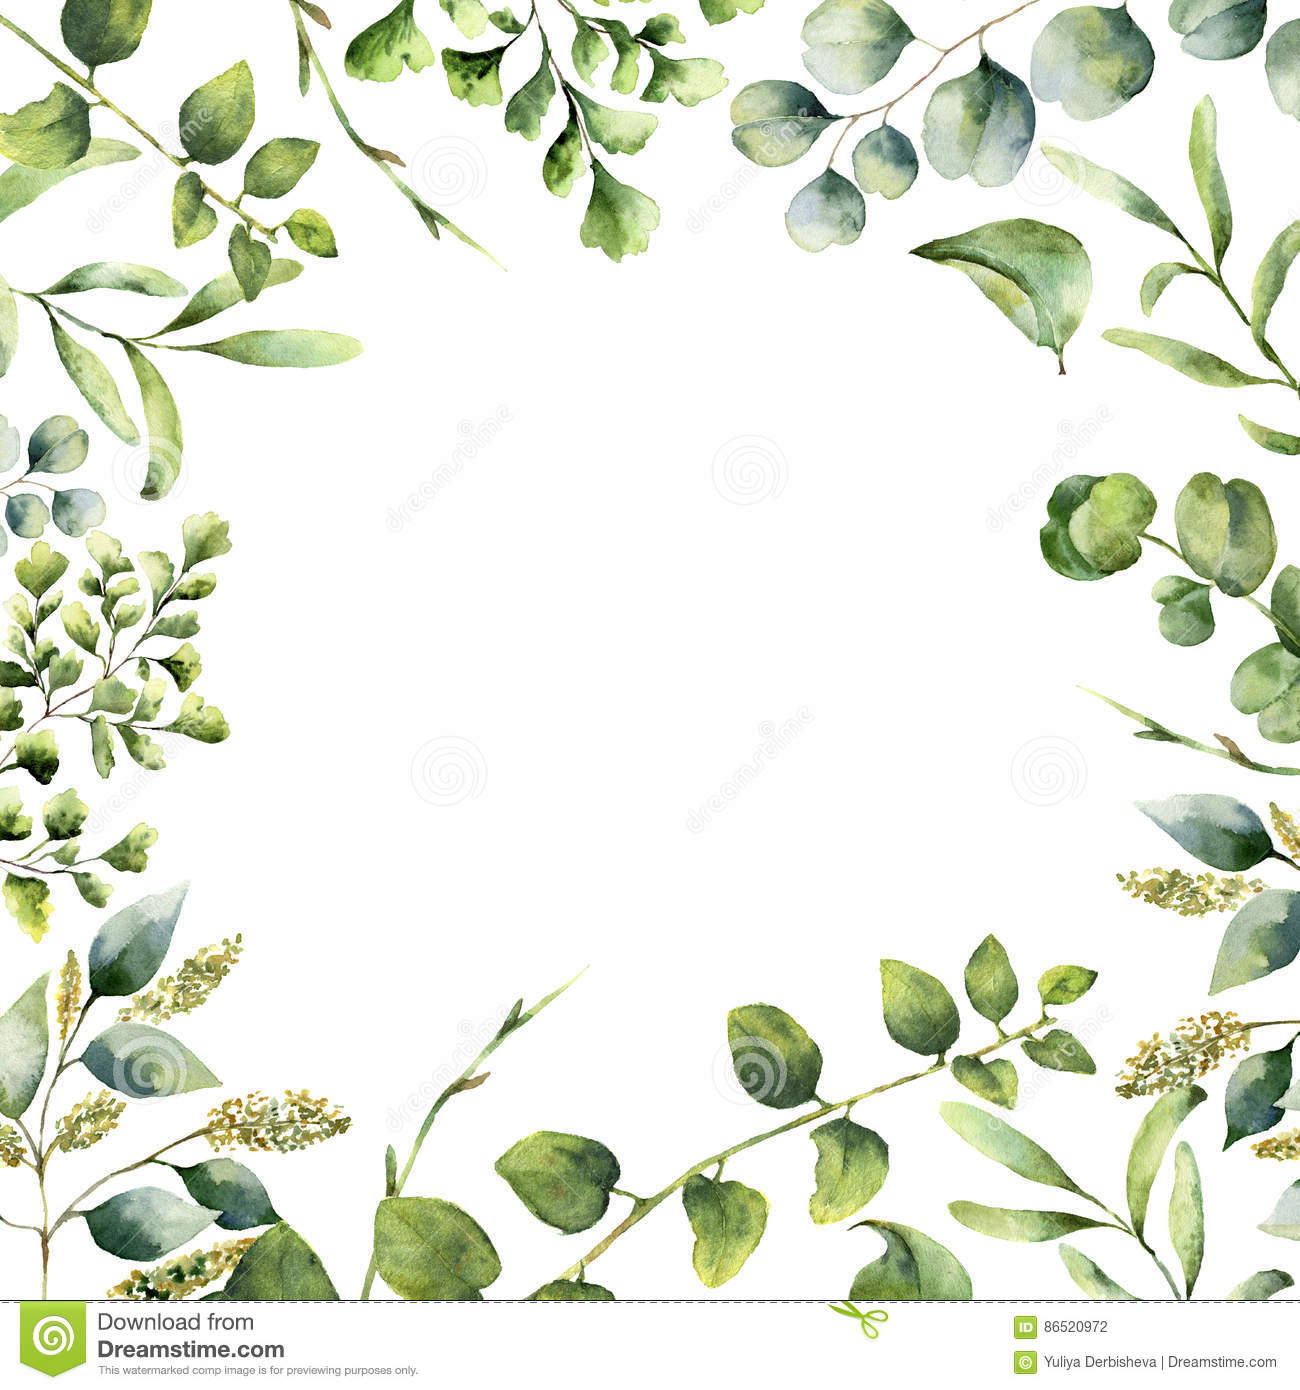 Watercolor floral frame. Hand painted plant card with eucalyptus, fern and spring greenery branches isolated on white